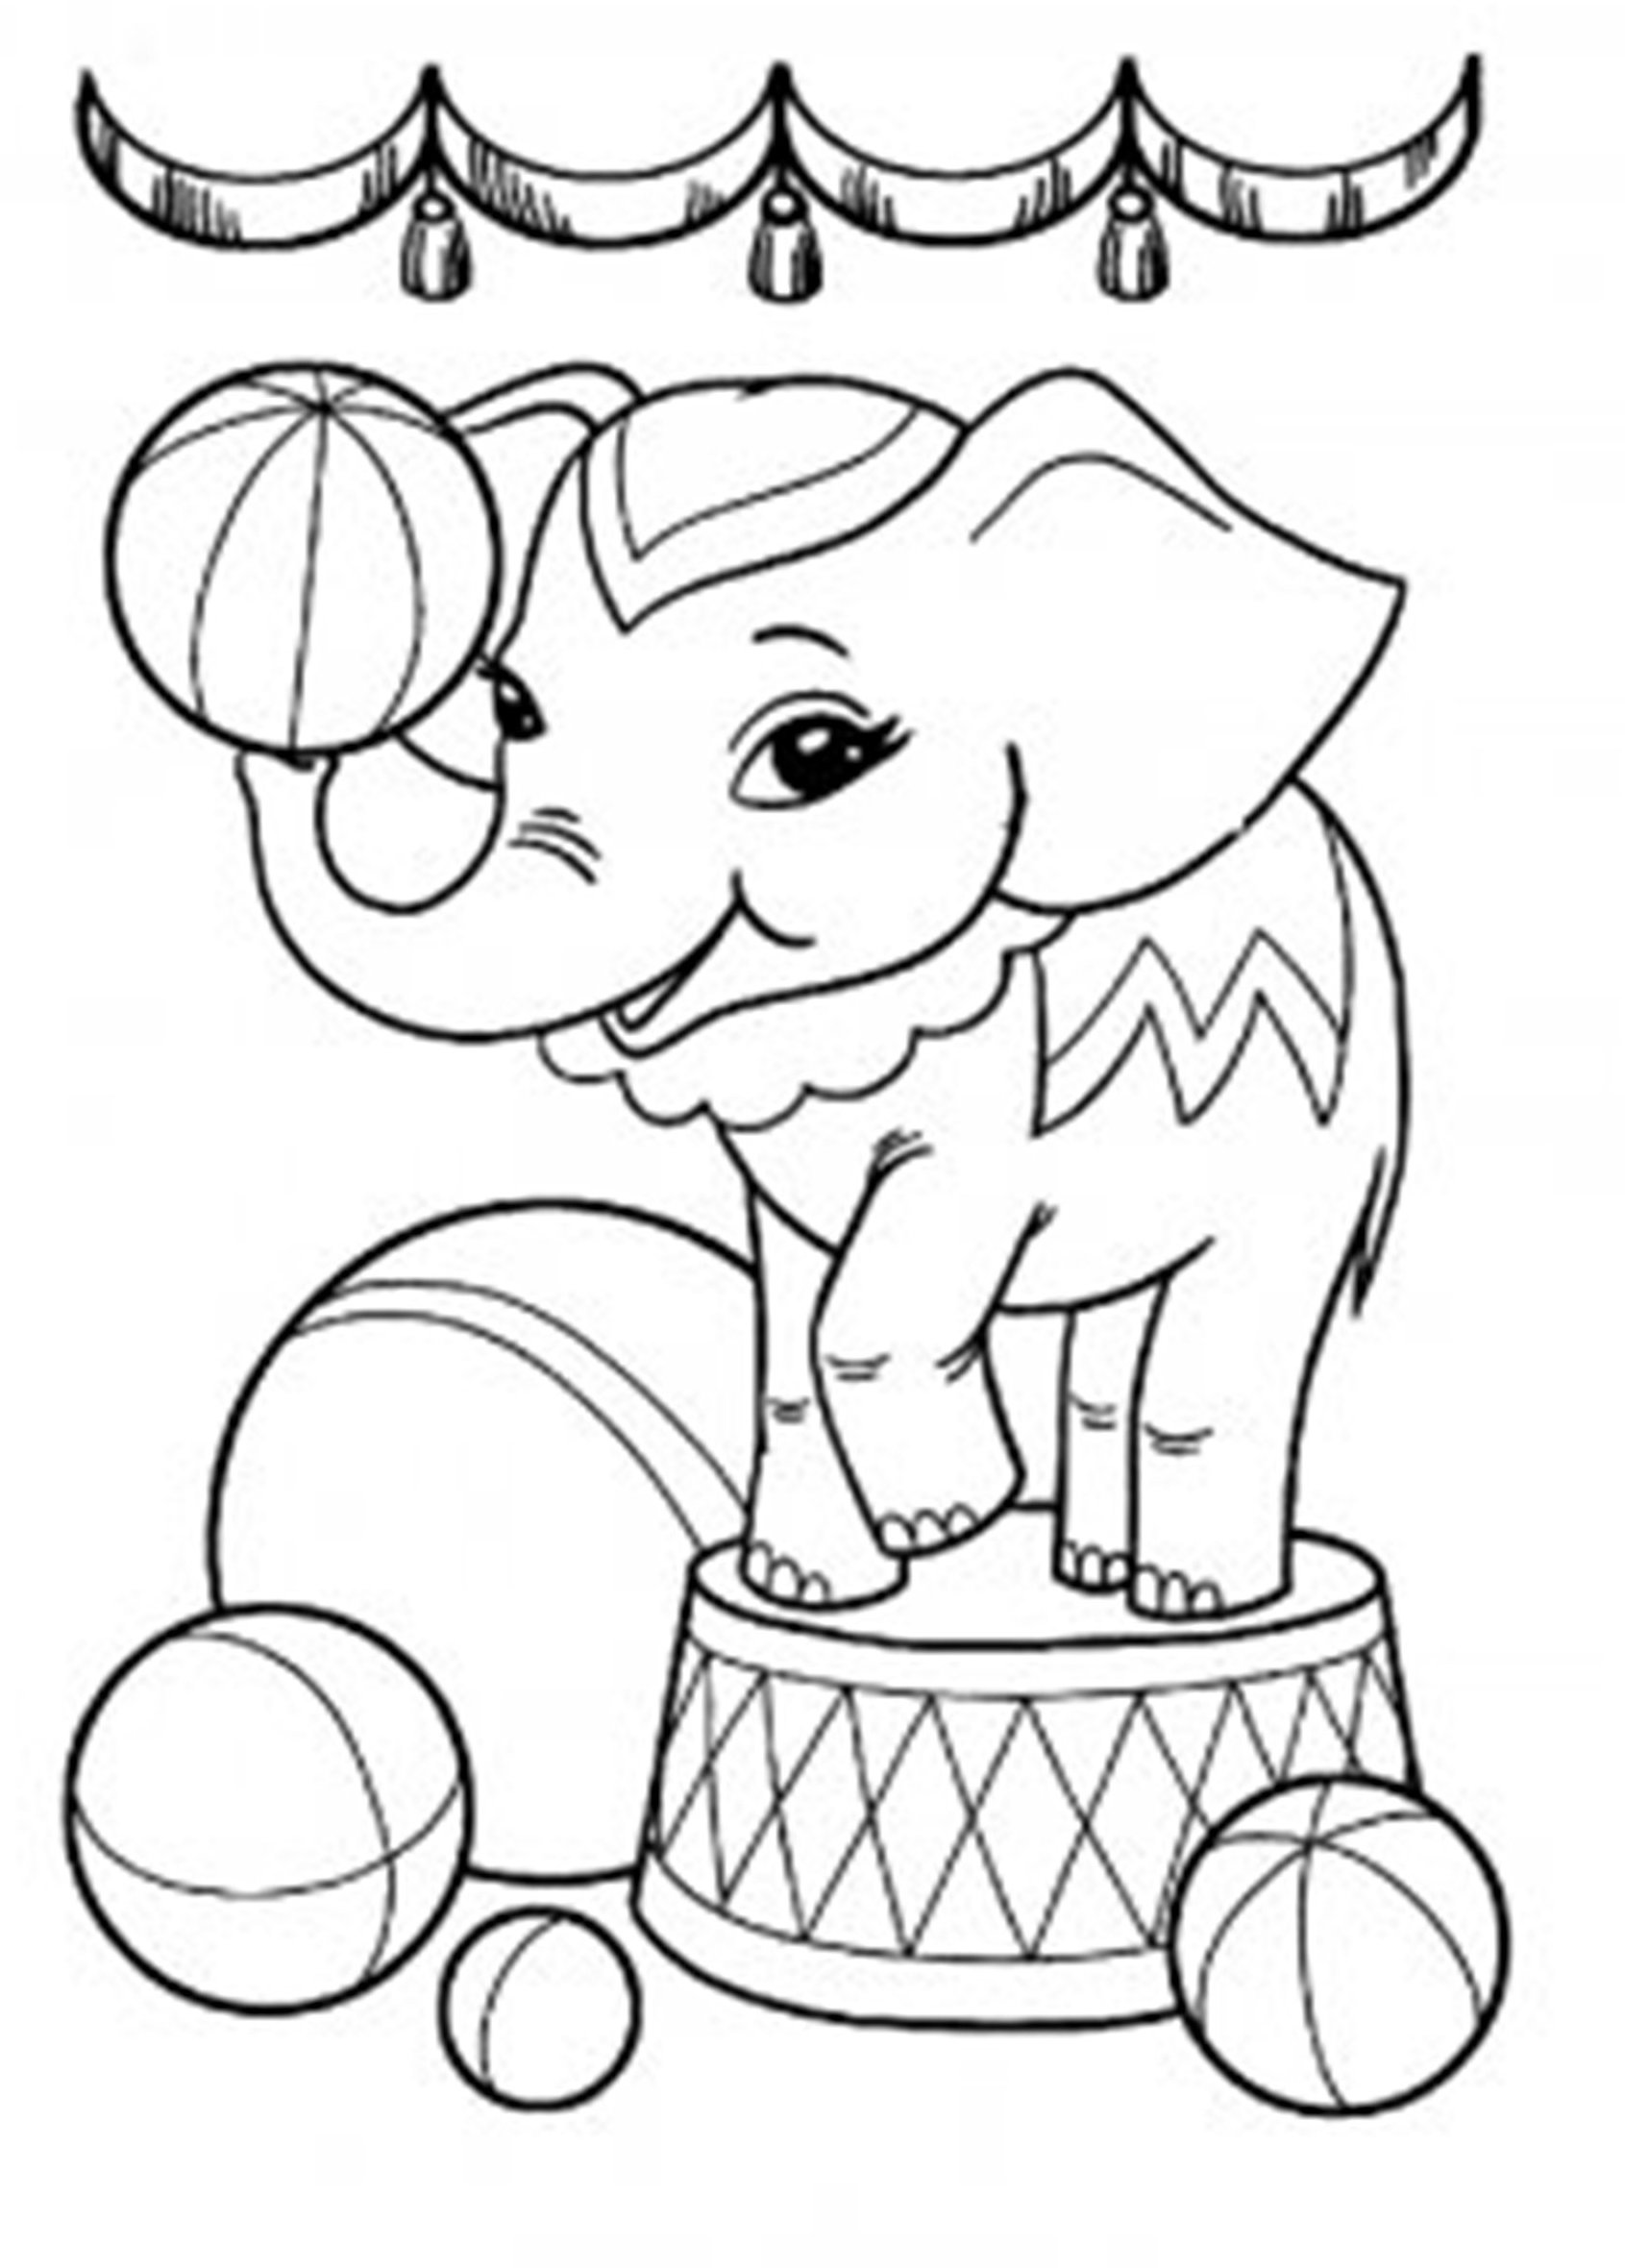 coloring picture color for kids hamster coloring pages best coloring pages for kids color coloring kids picture for